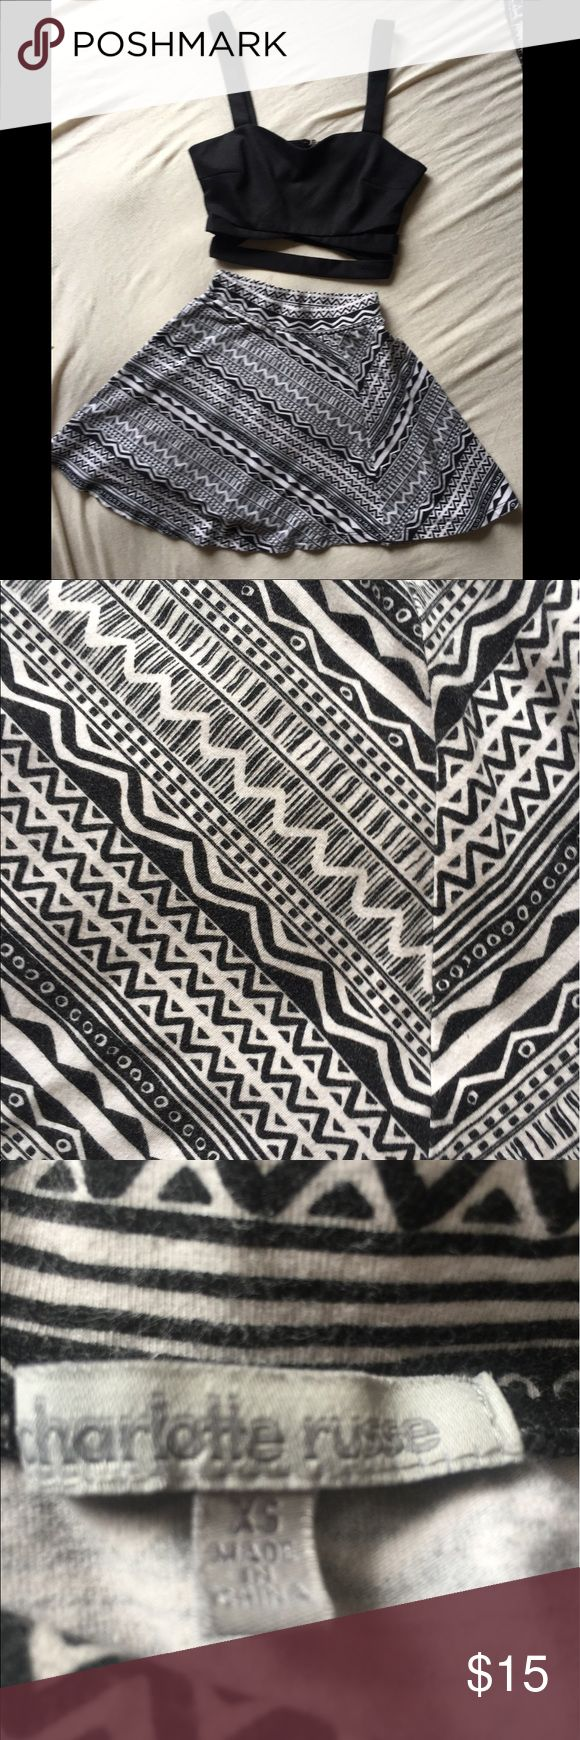 Charlotte Russe Black & White Aztec Skater Skirt Very little wear. Perfect outfit for a day out on melrose. Aztec print in black and white. XS. Charlotte Russe Skirts Circle & Skater